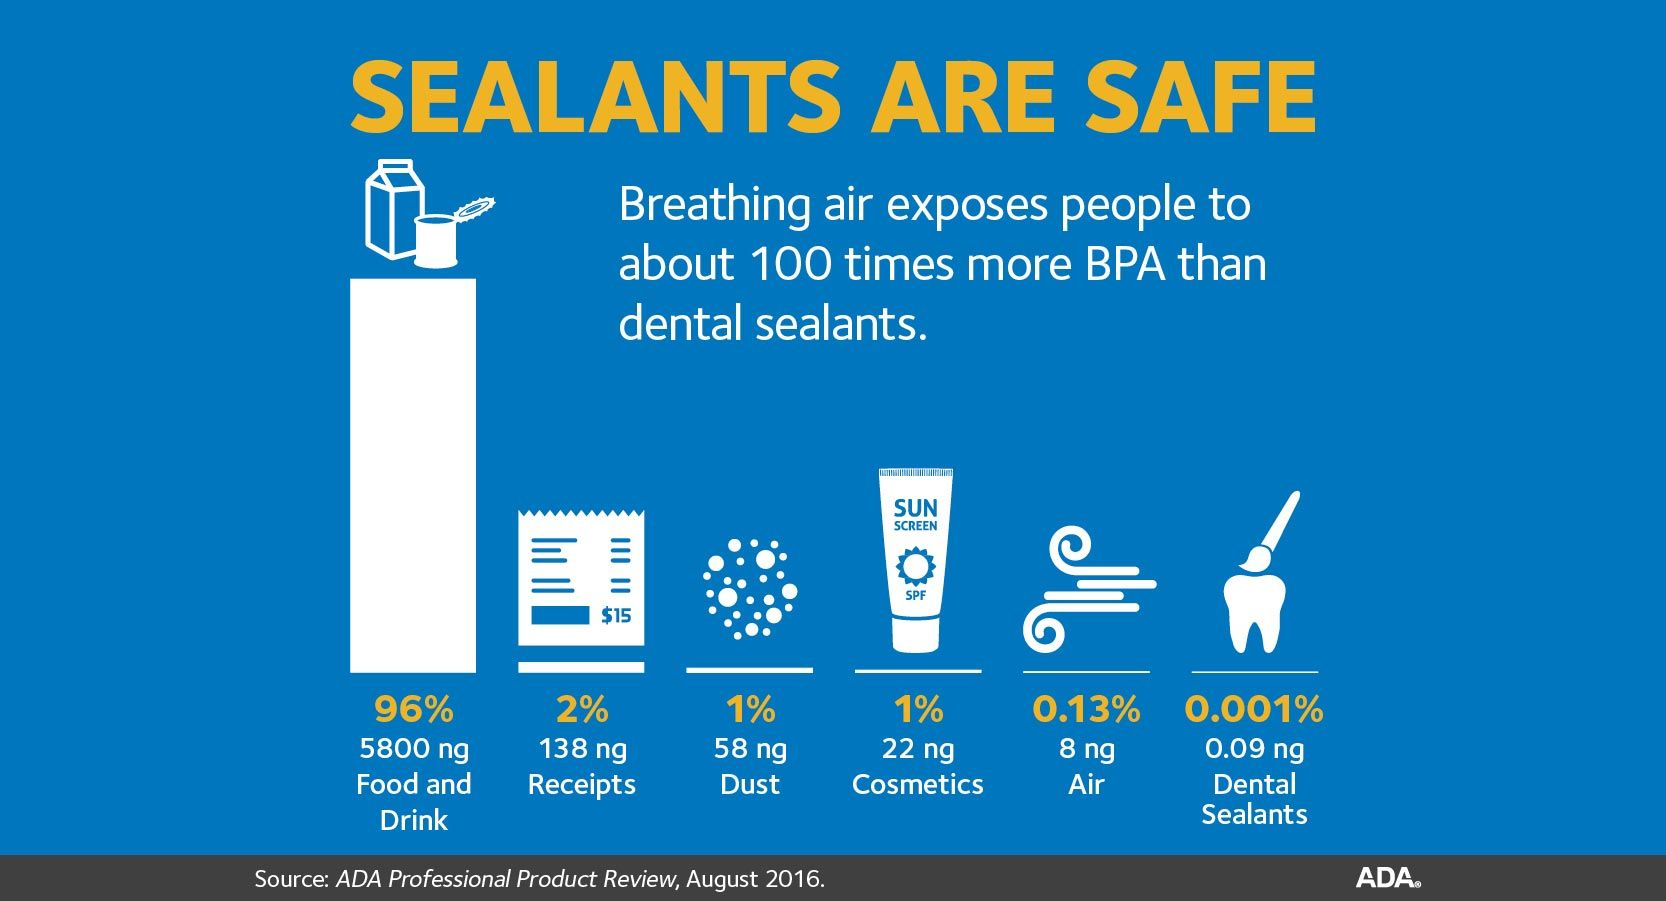 Sealants are Safe for Facebook